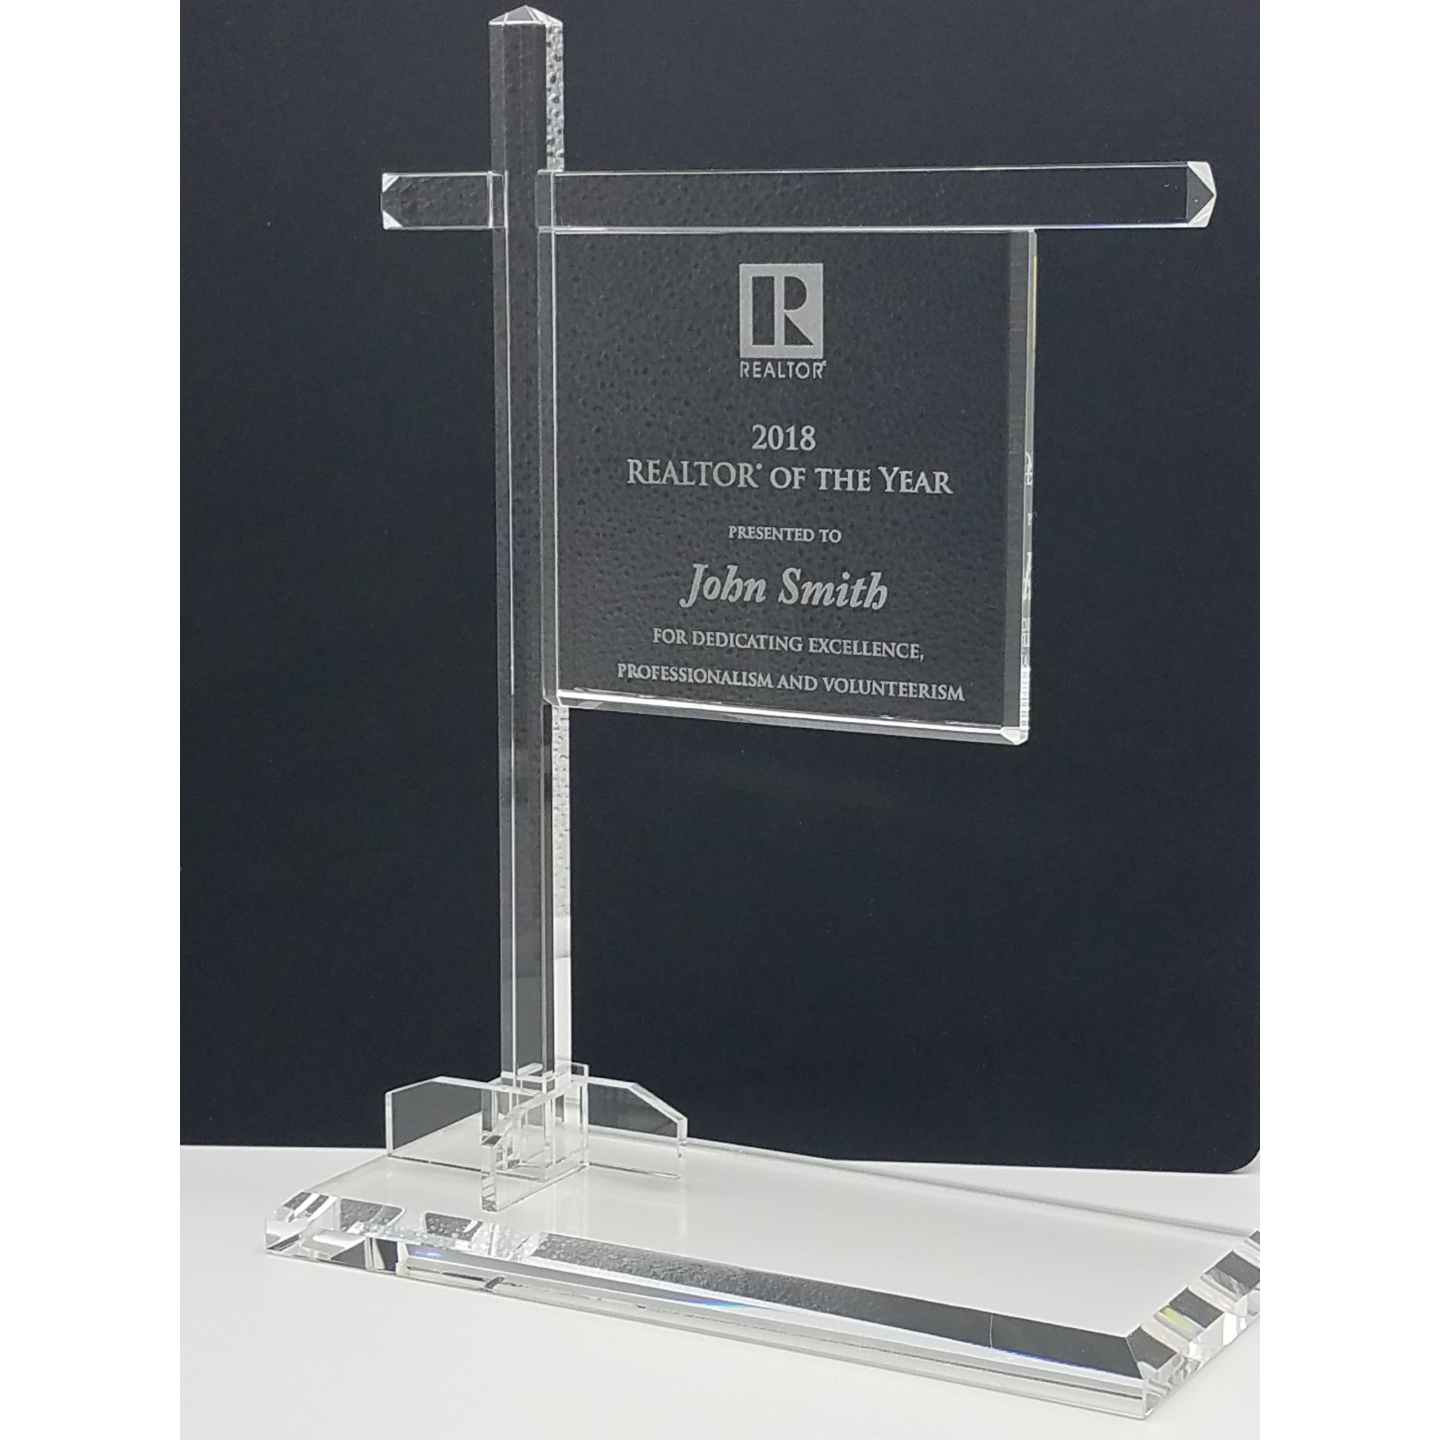 Crystal Sold Yard Sign Award Awards,Award,Plaque,Plaques,Crystal,Glass,Solds,Signs,Yards